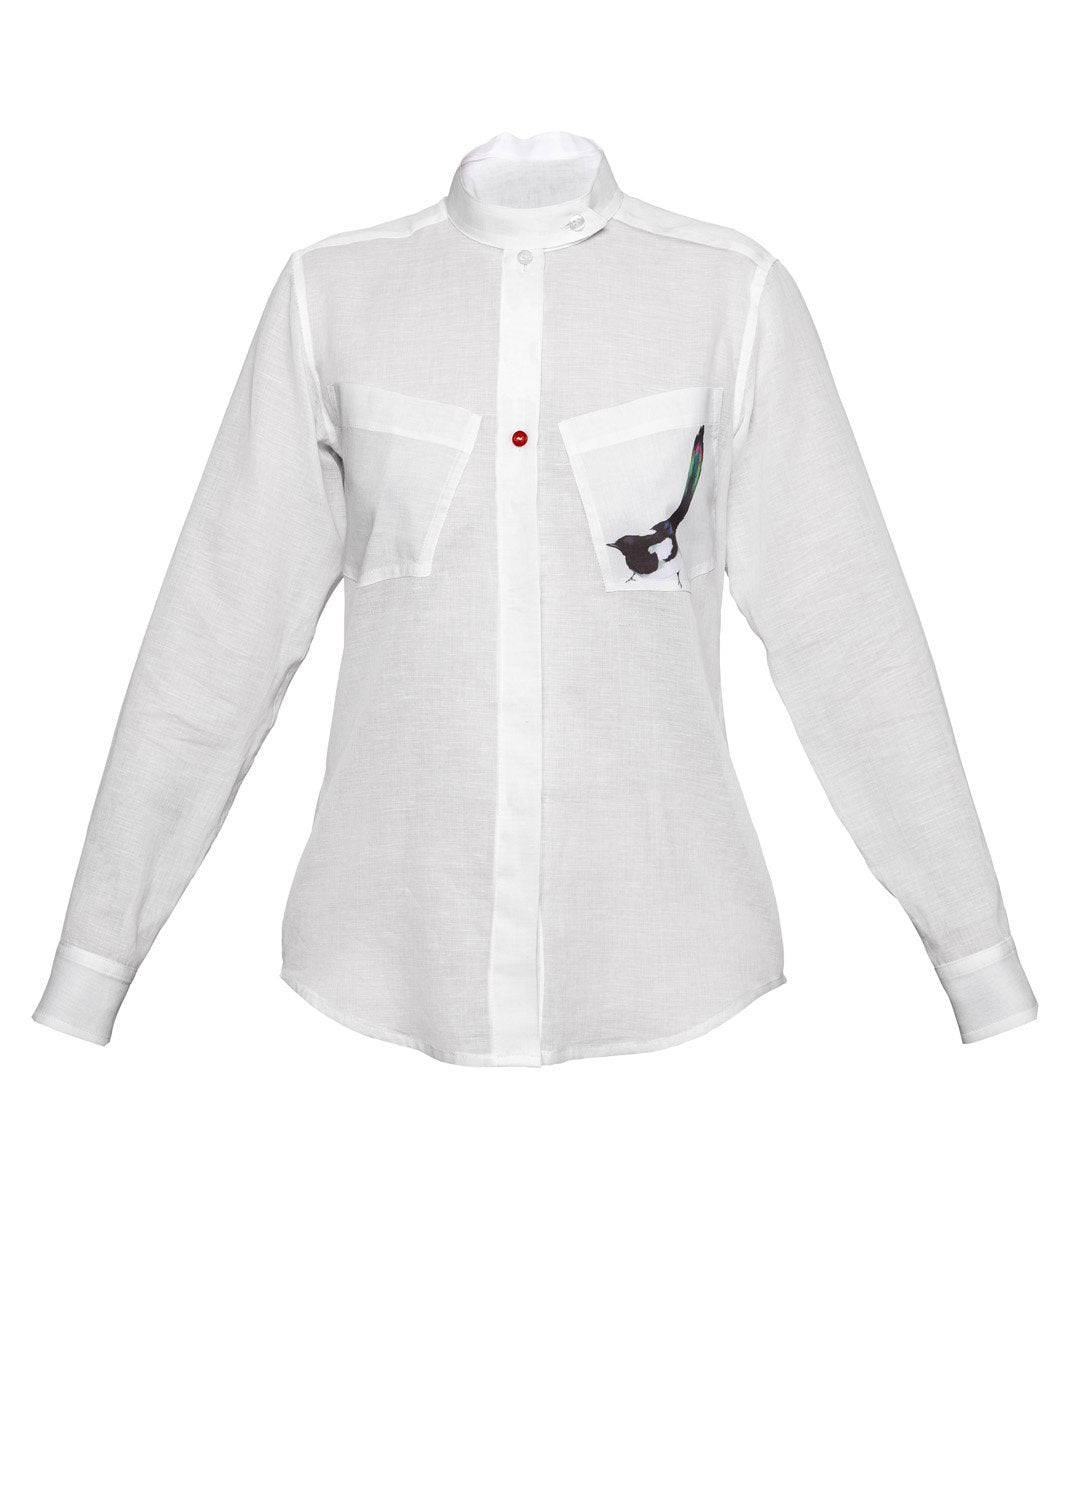 Magpie Shirt White - The Clothing LoungeTalented